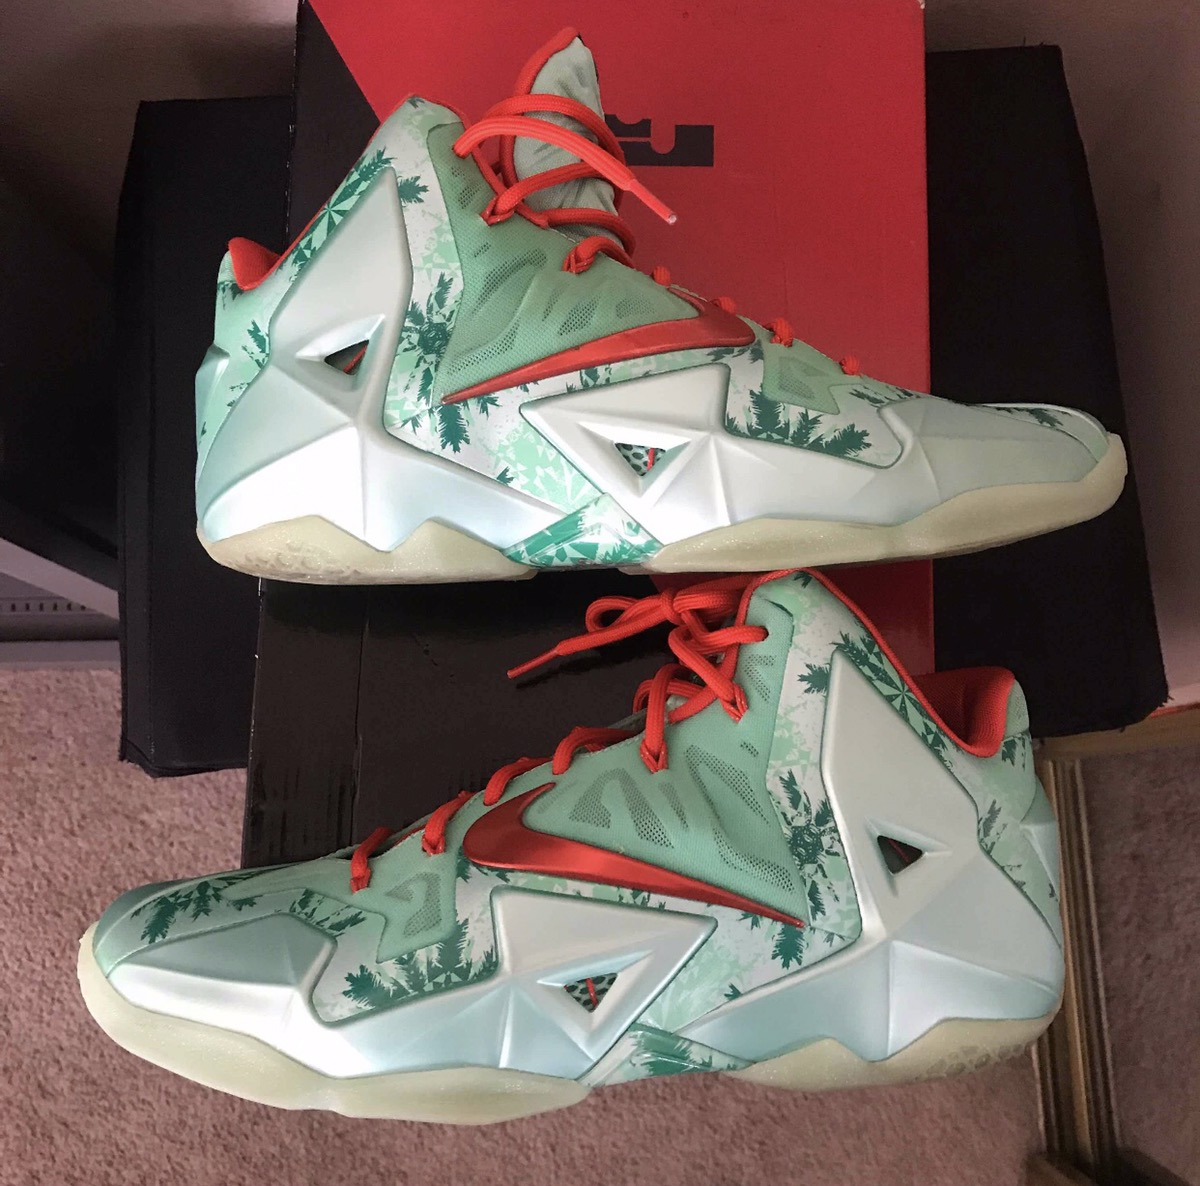 ef403d0ee4685 Nike Nike Air Lebron 11 XI CHRISTMAS Holiday Pack Size 11 Size 11 - Hi-Top  Sneakers for Sale - Grailed